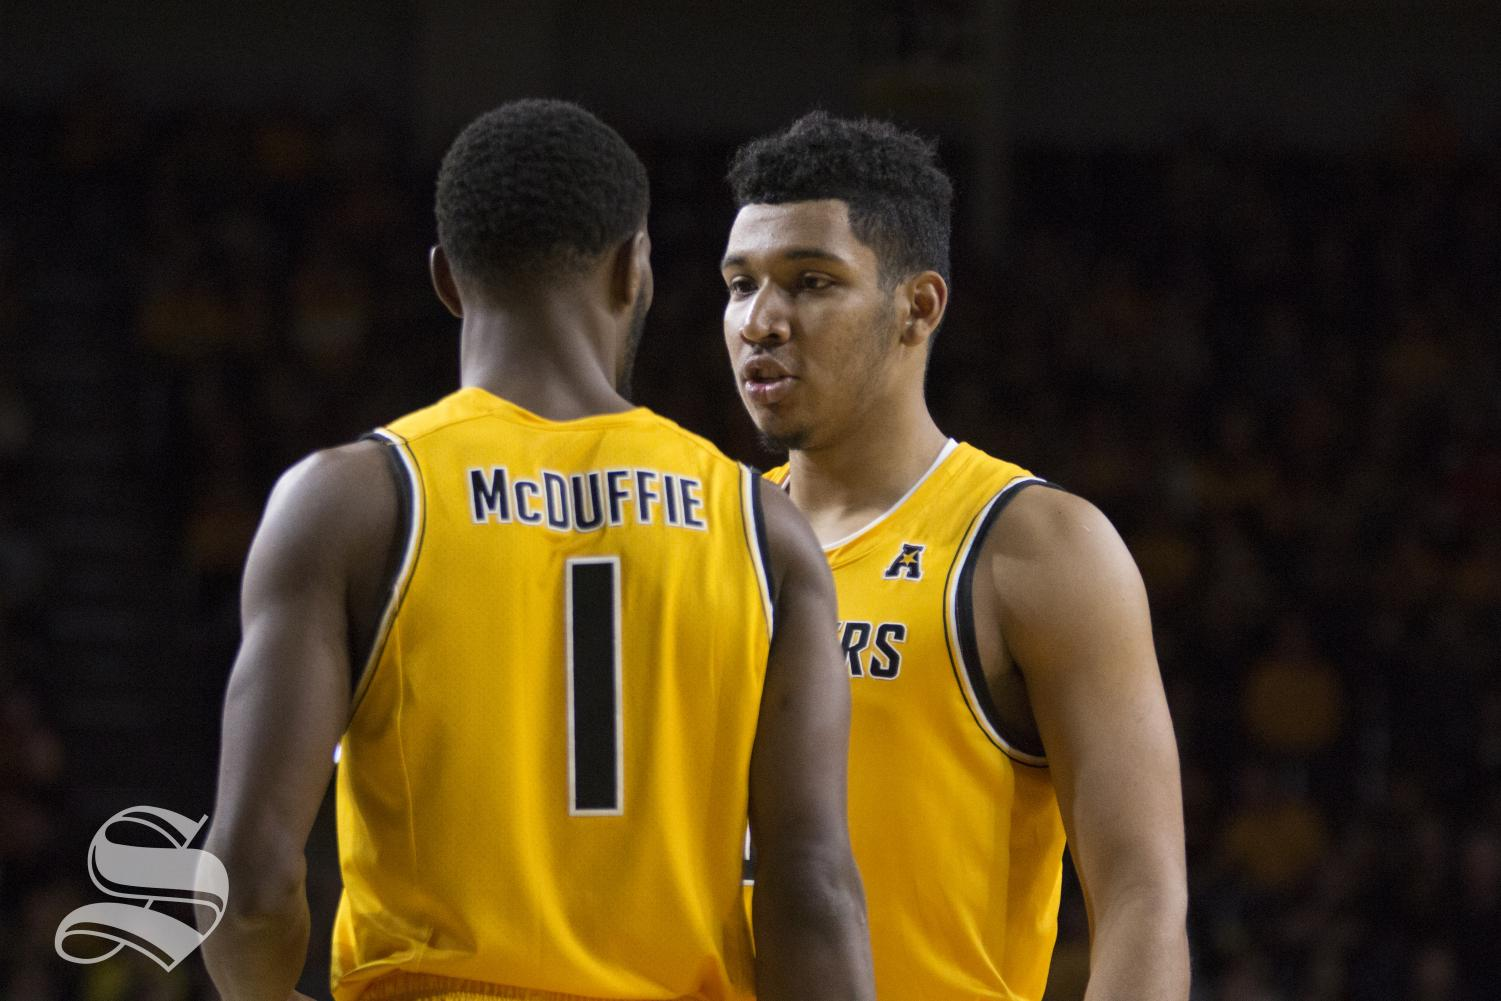 Wichita State's Jaime Echenique  (21) speaks to Markis McDuffie (1) during the exhibition game against Catawba Oct. 29, 2018.